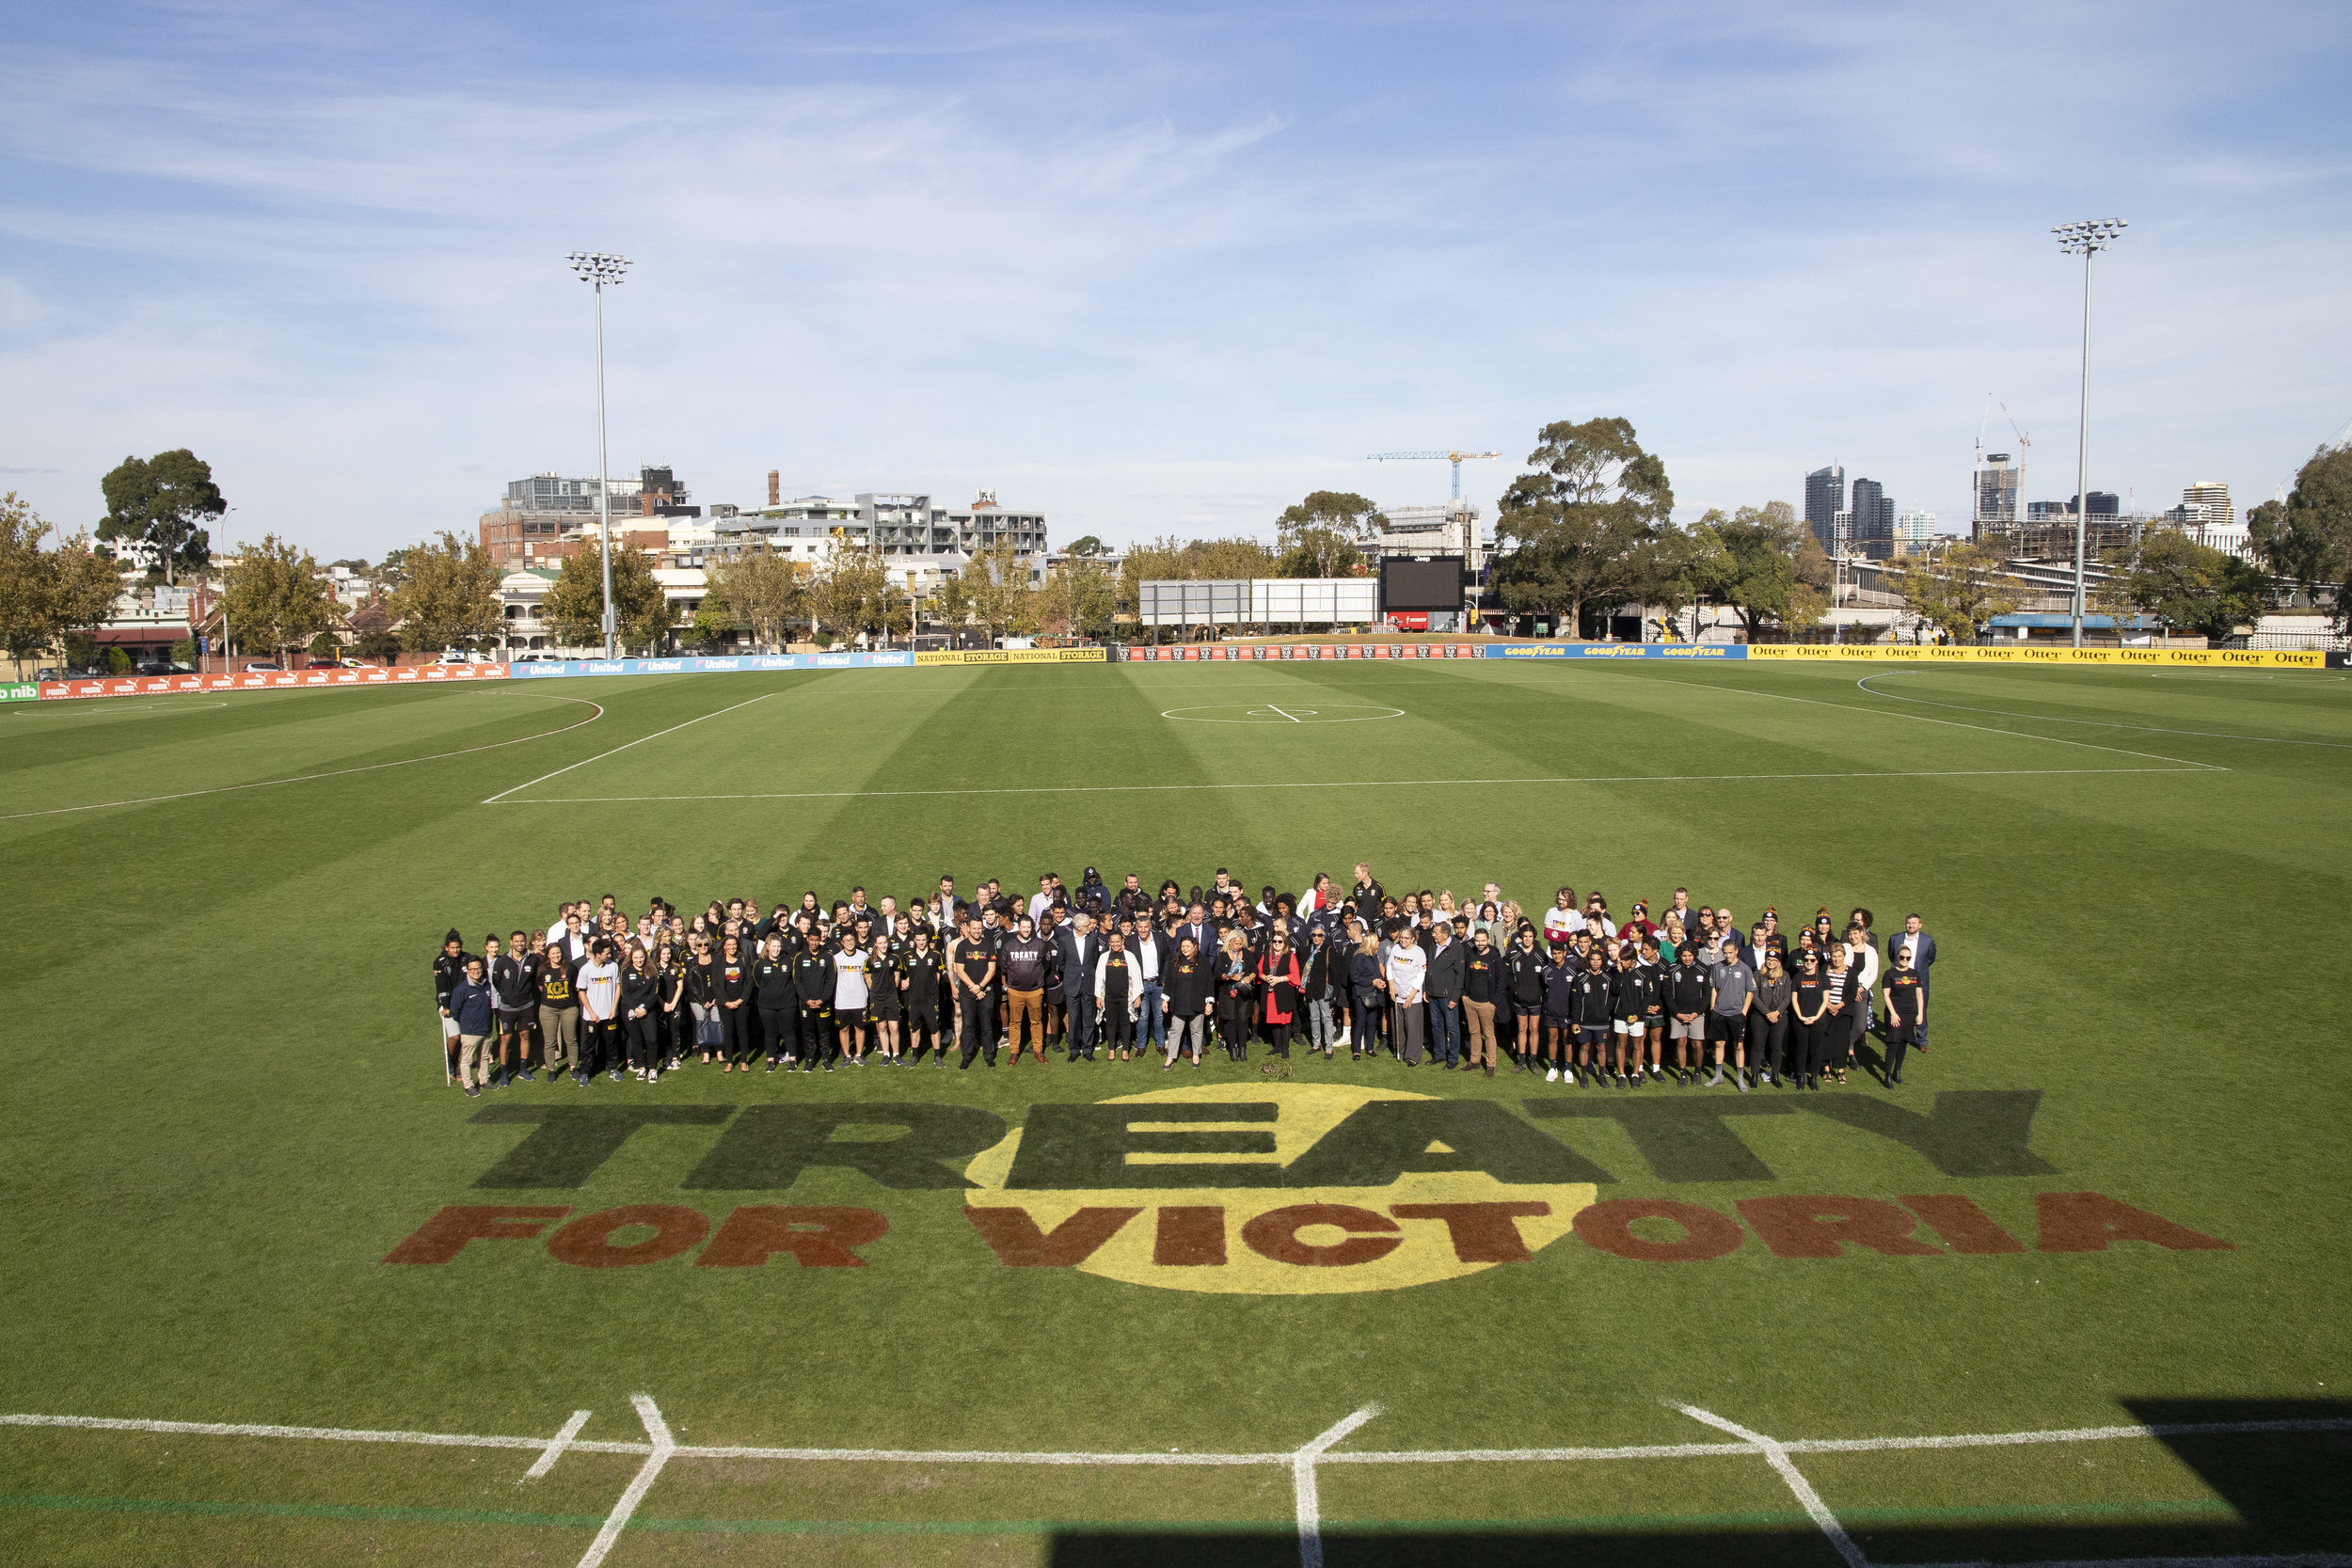 The Victorian Treaty Advancement Commission is partnering with Richmond Football Club to promote the Treaty process. The club used the annual 'Dreamtime at the G', played on May 25th, as an opportunity to raise awareness of Treaty.